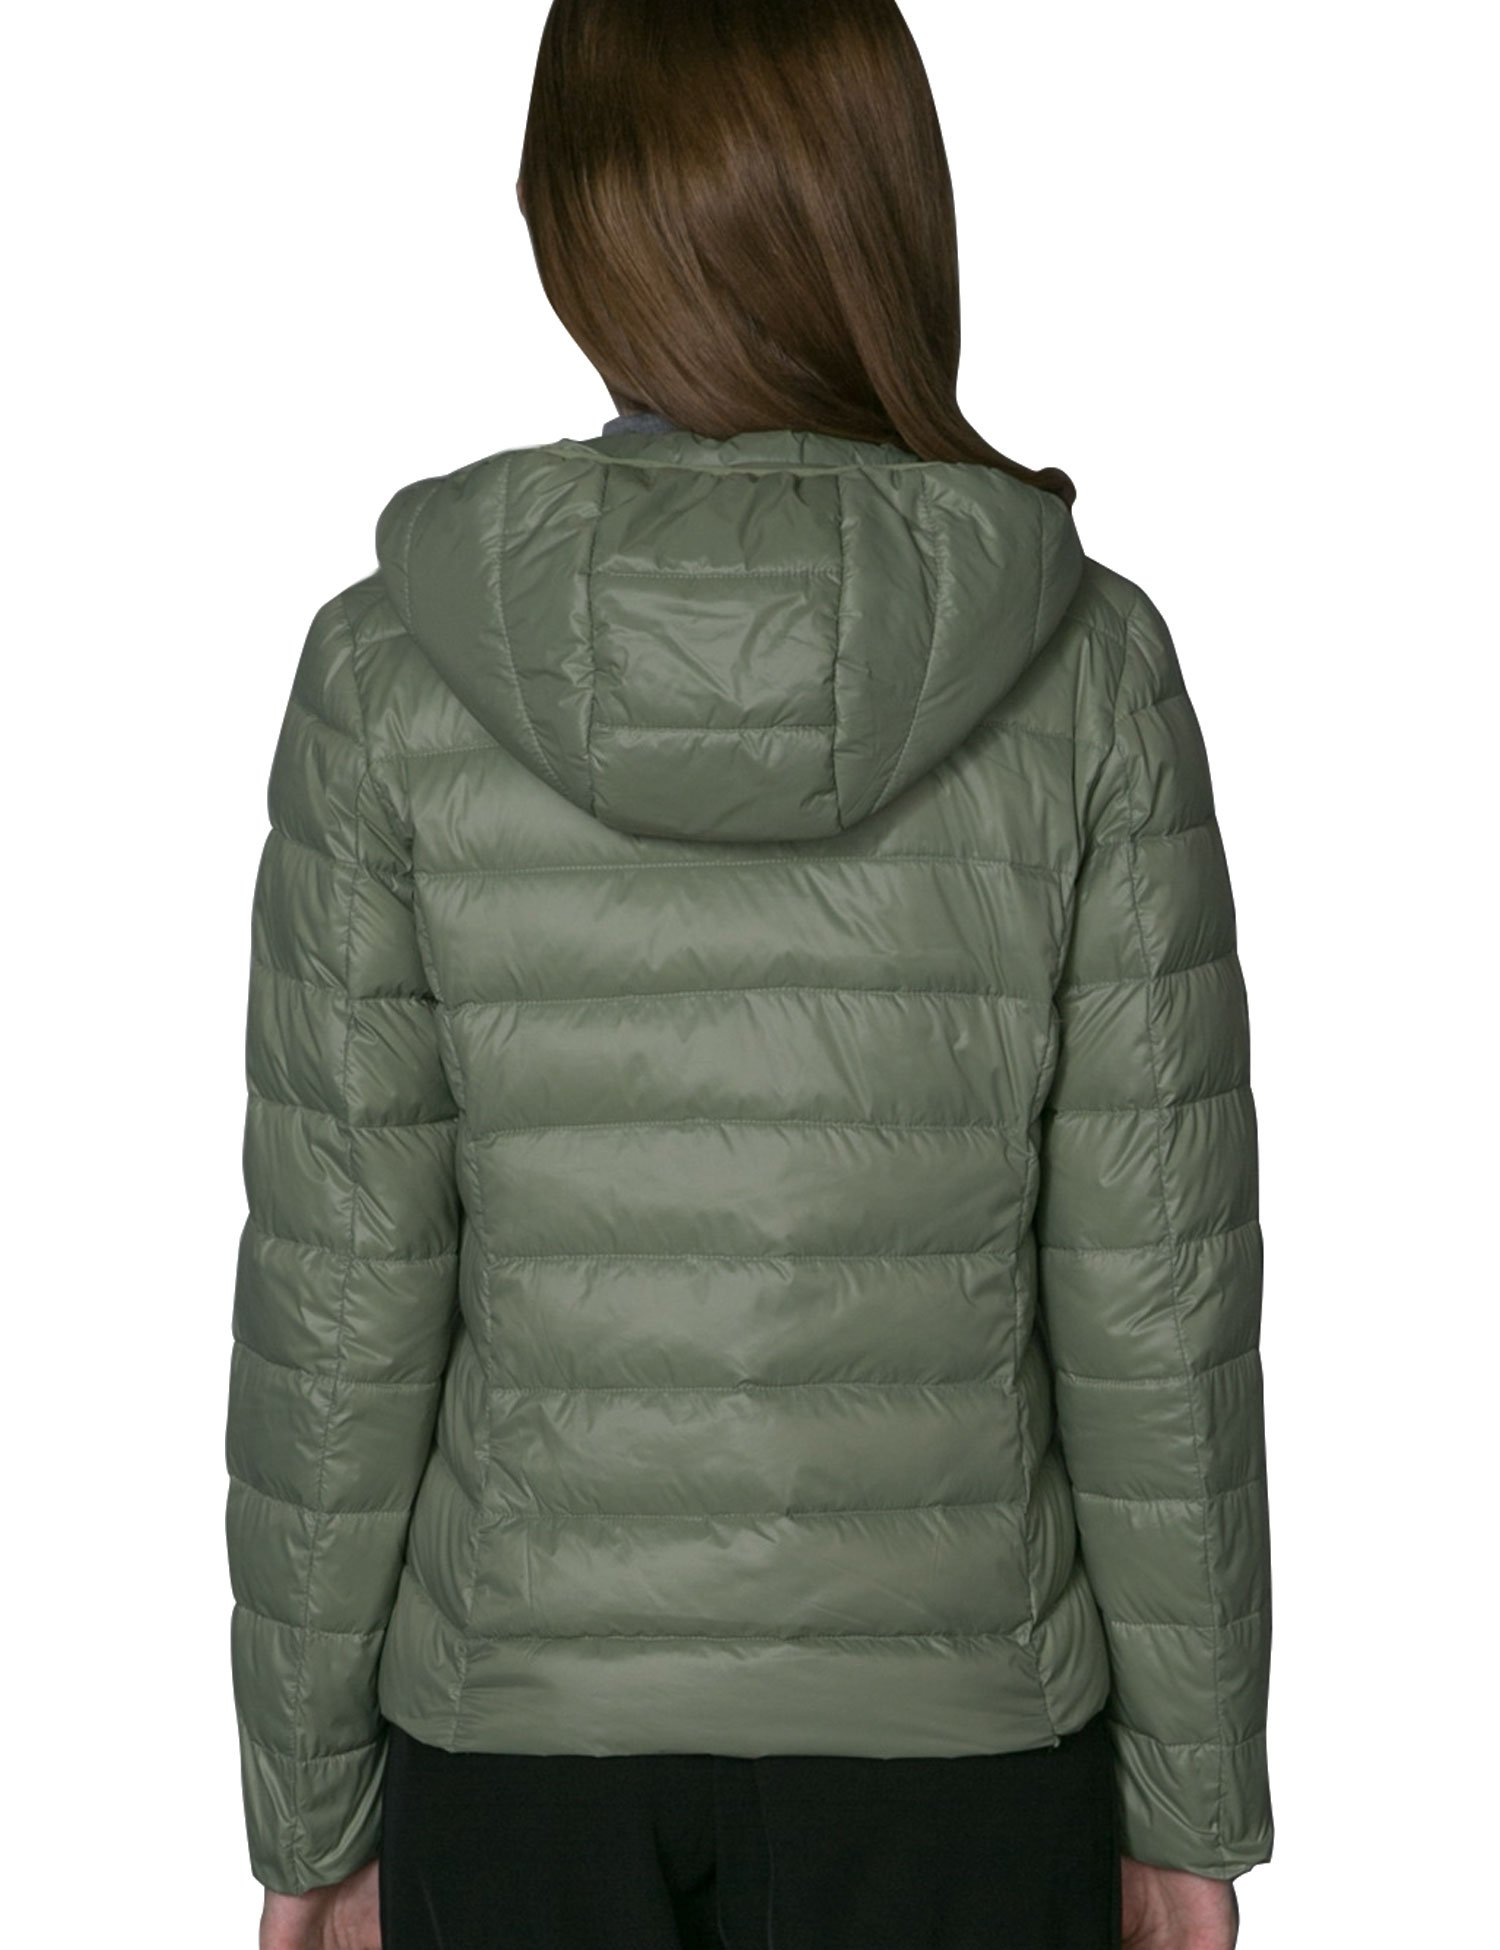 CHERRY CHICK Special Color, Packable, Ultralight, Women's Puffer Down Parka Jacket with Hood (S, Pea Green-17)